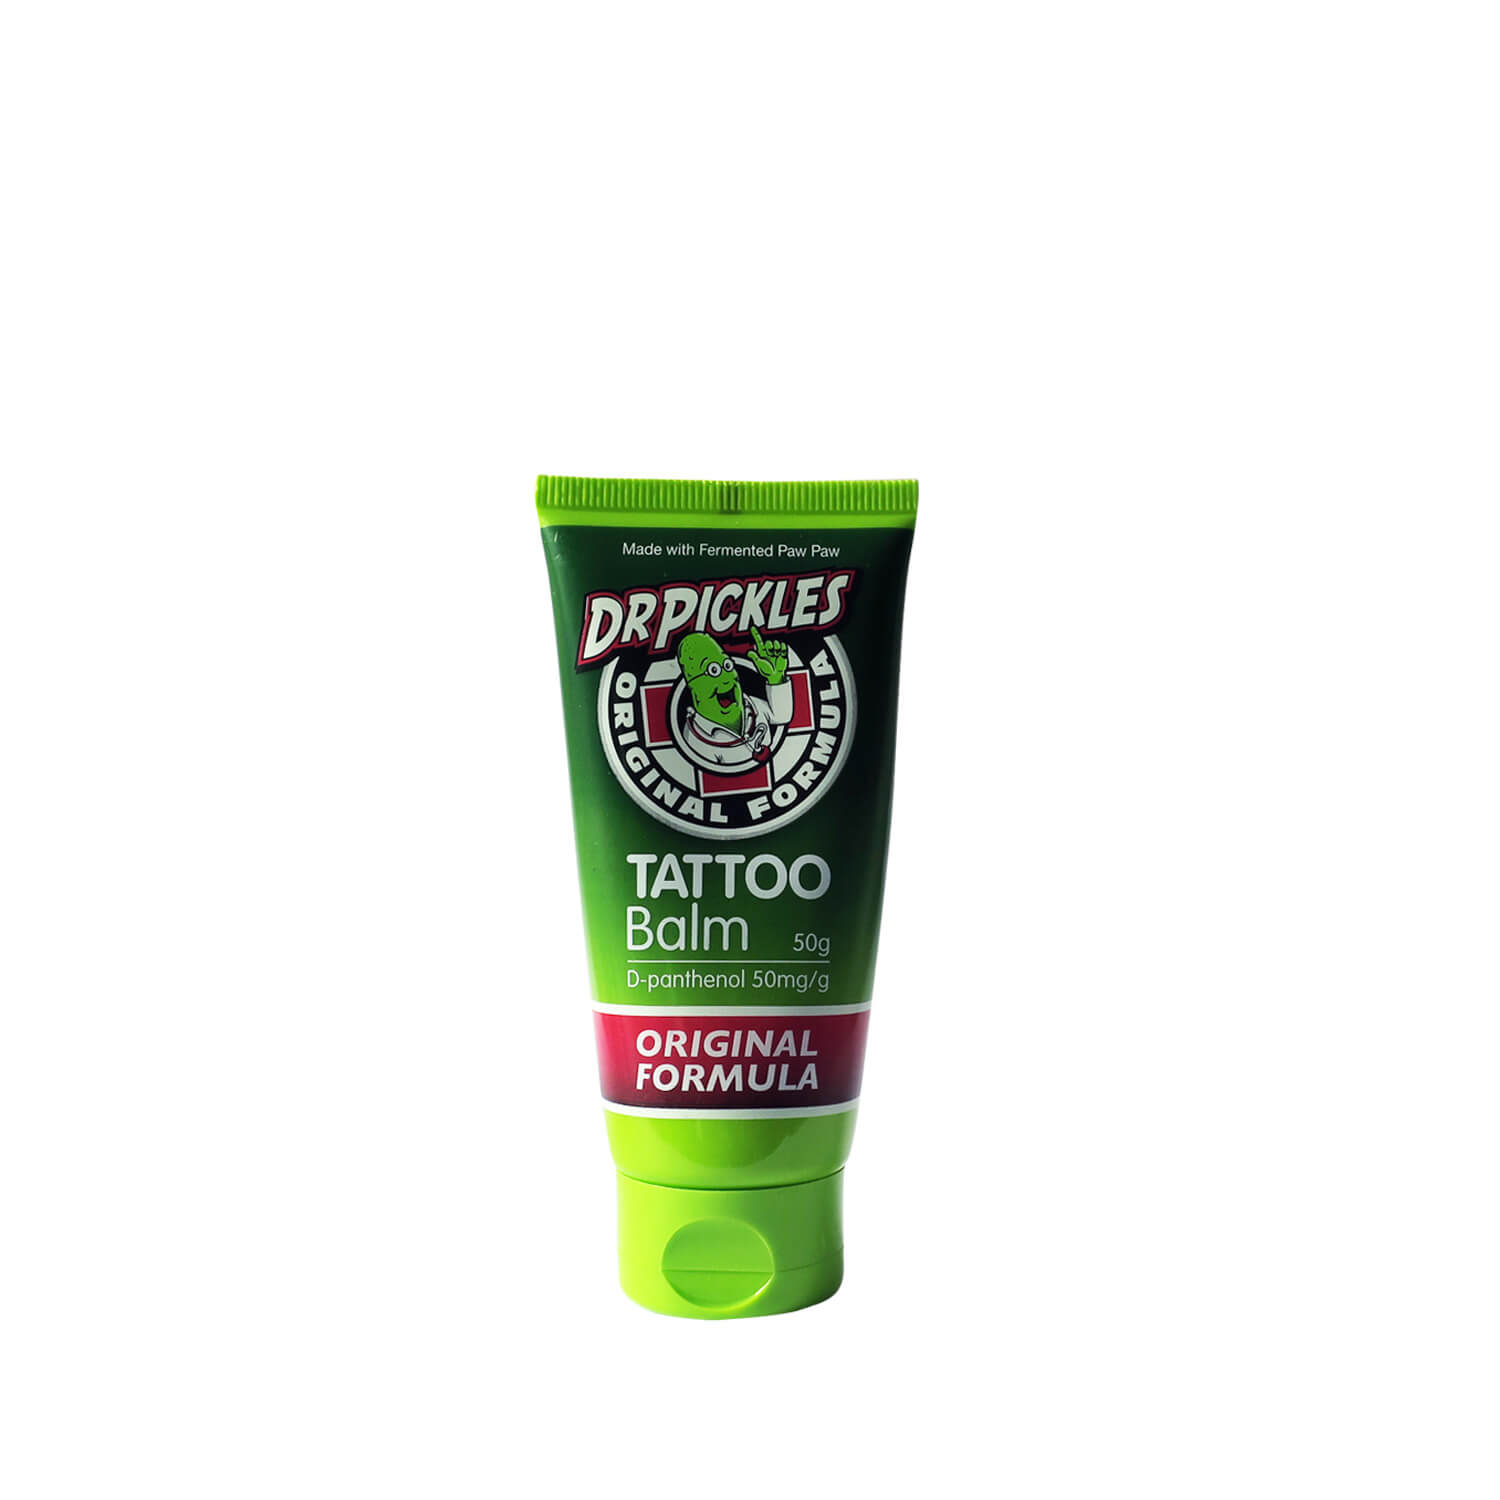 Dr Pickles Tattoo Balm 50g